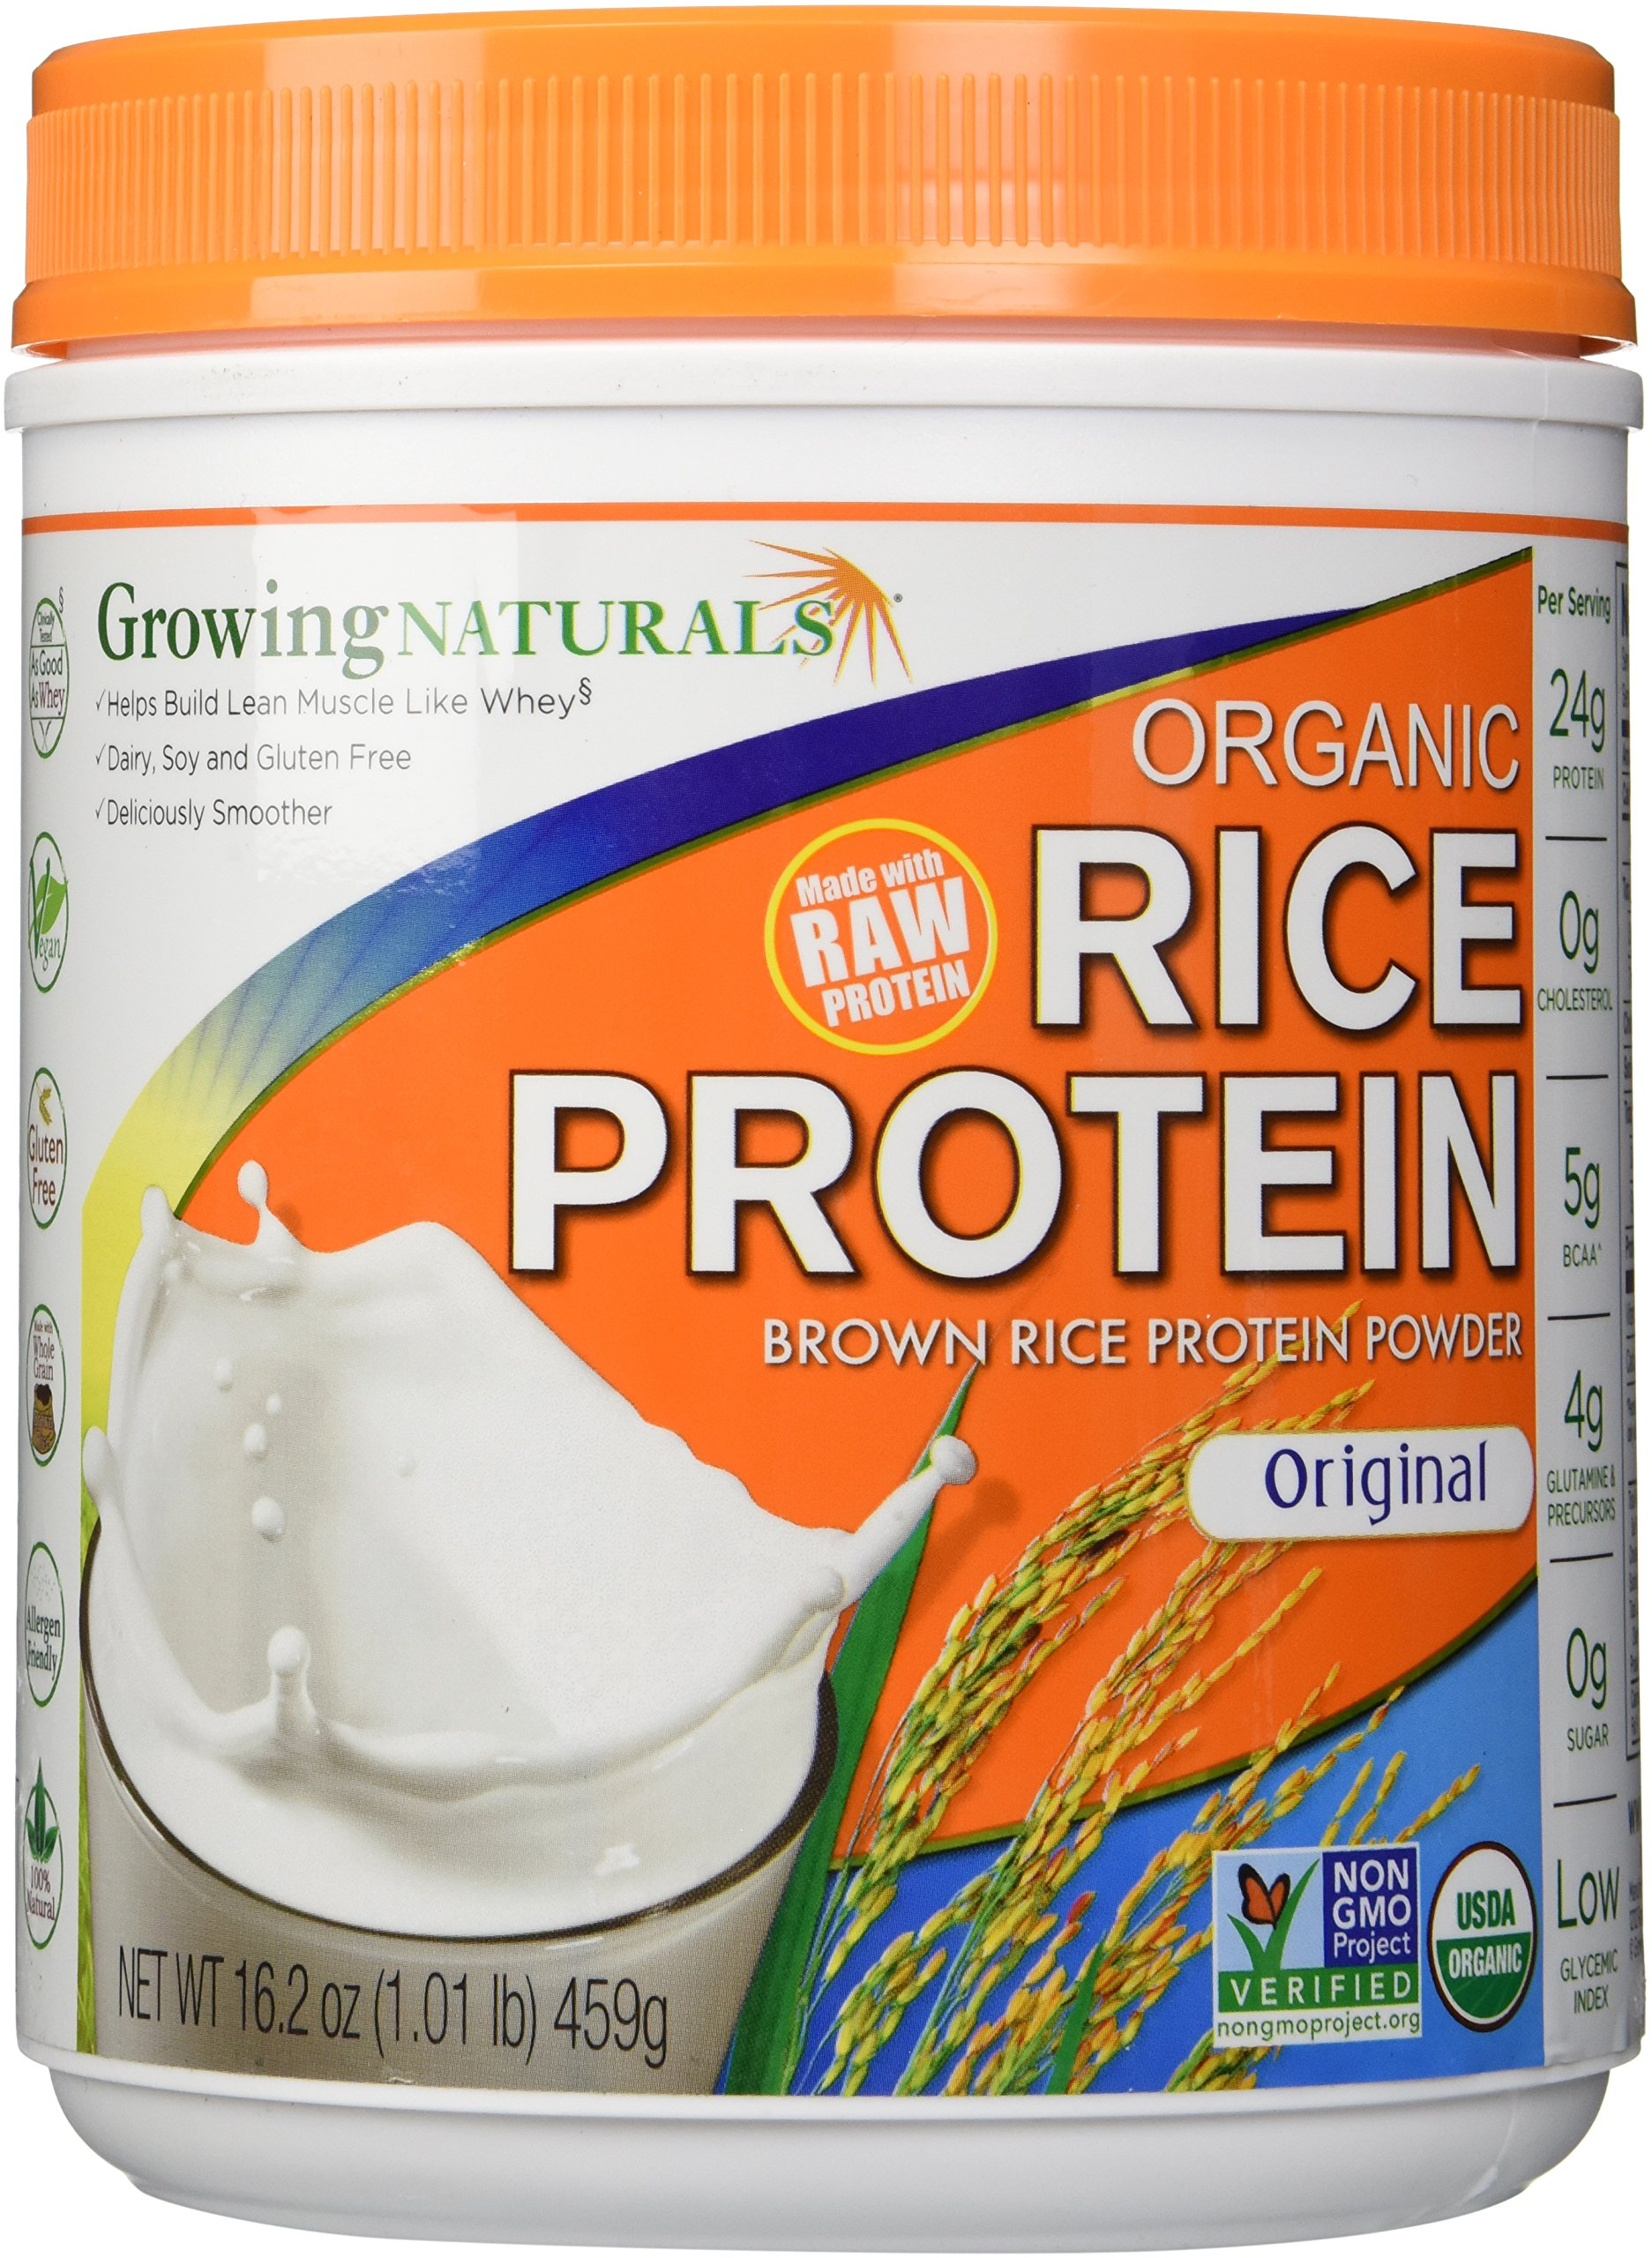 Growing Naturals Organic Rice Protein Powder, Original, 16.2 Ounce by Growing Naturals (Image #2)